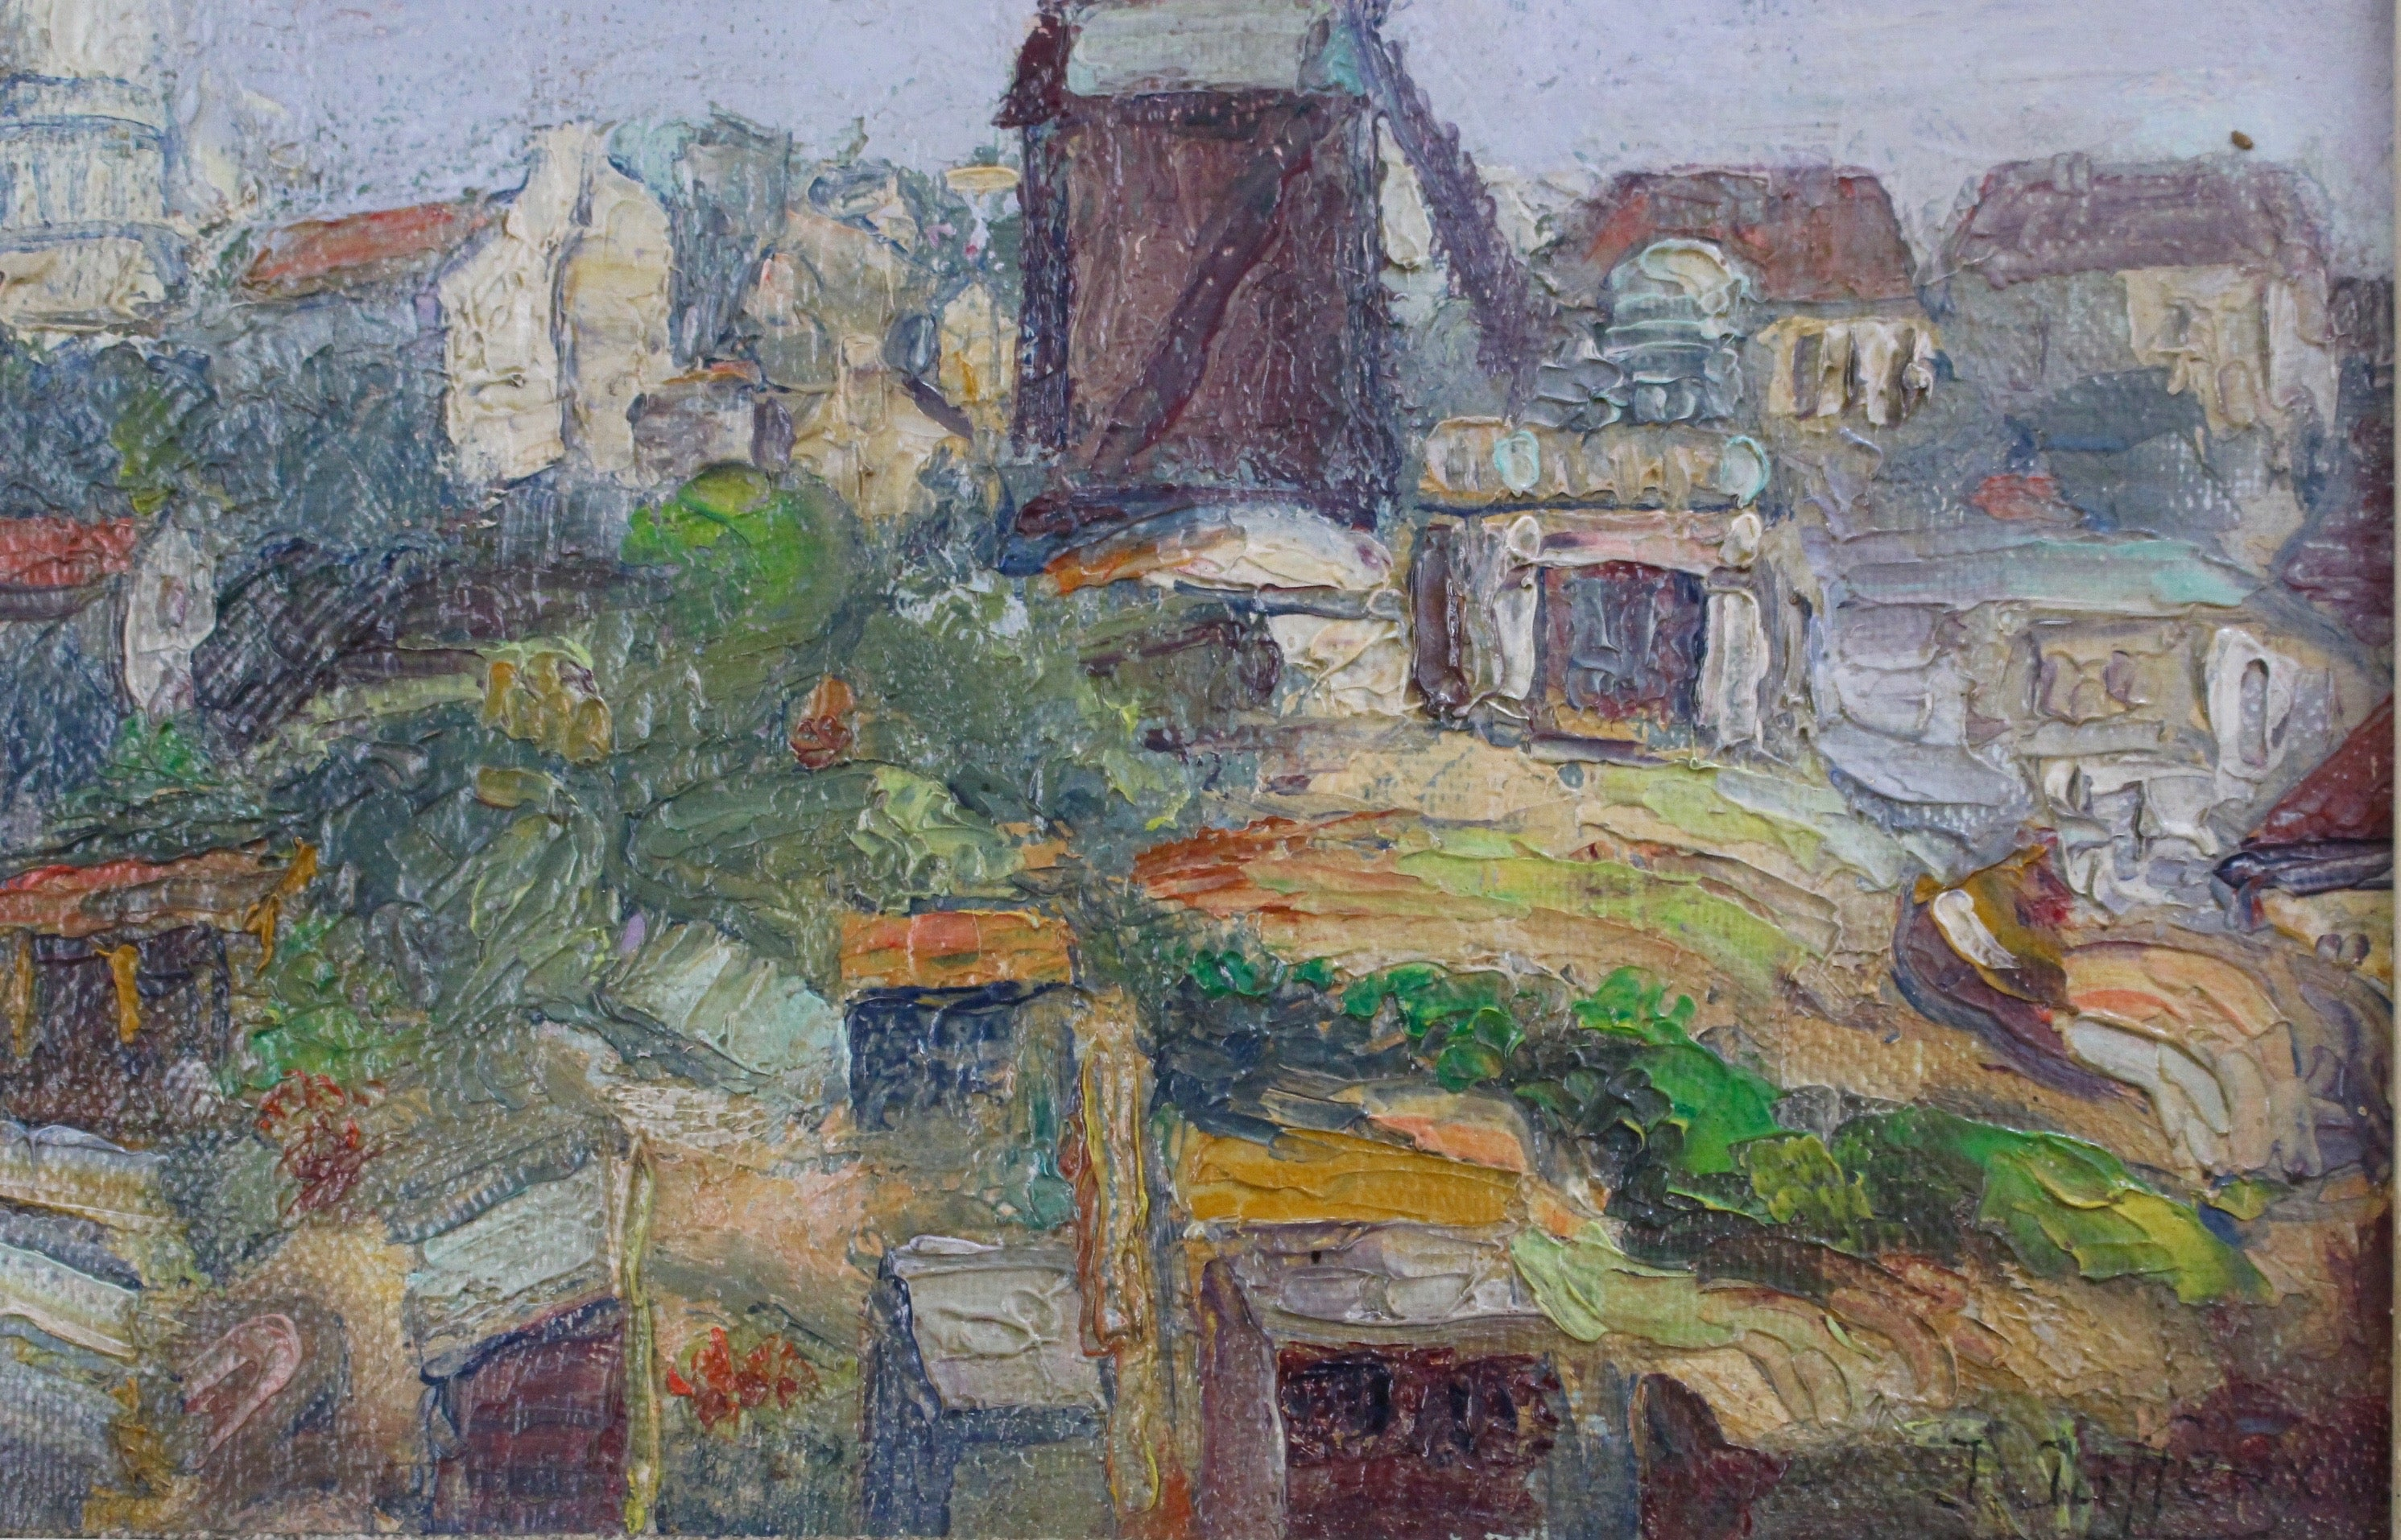 'View of Montmartre' by Jean Jaffeux (1955)